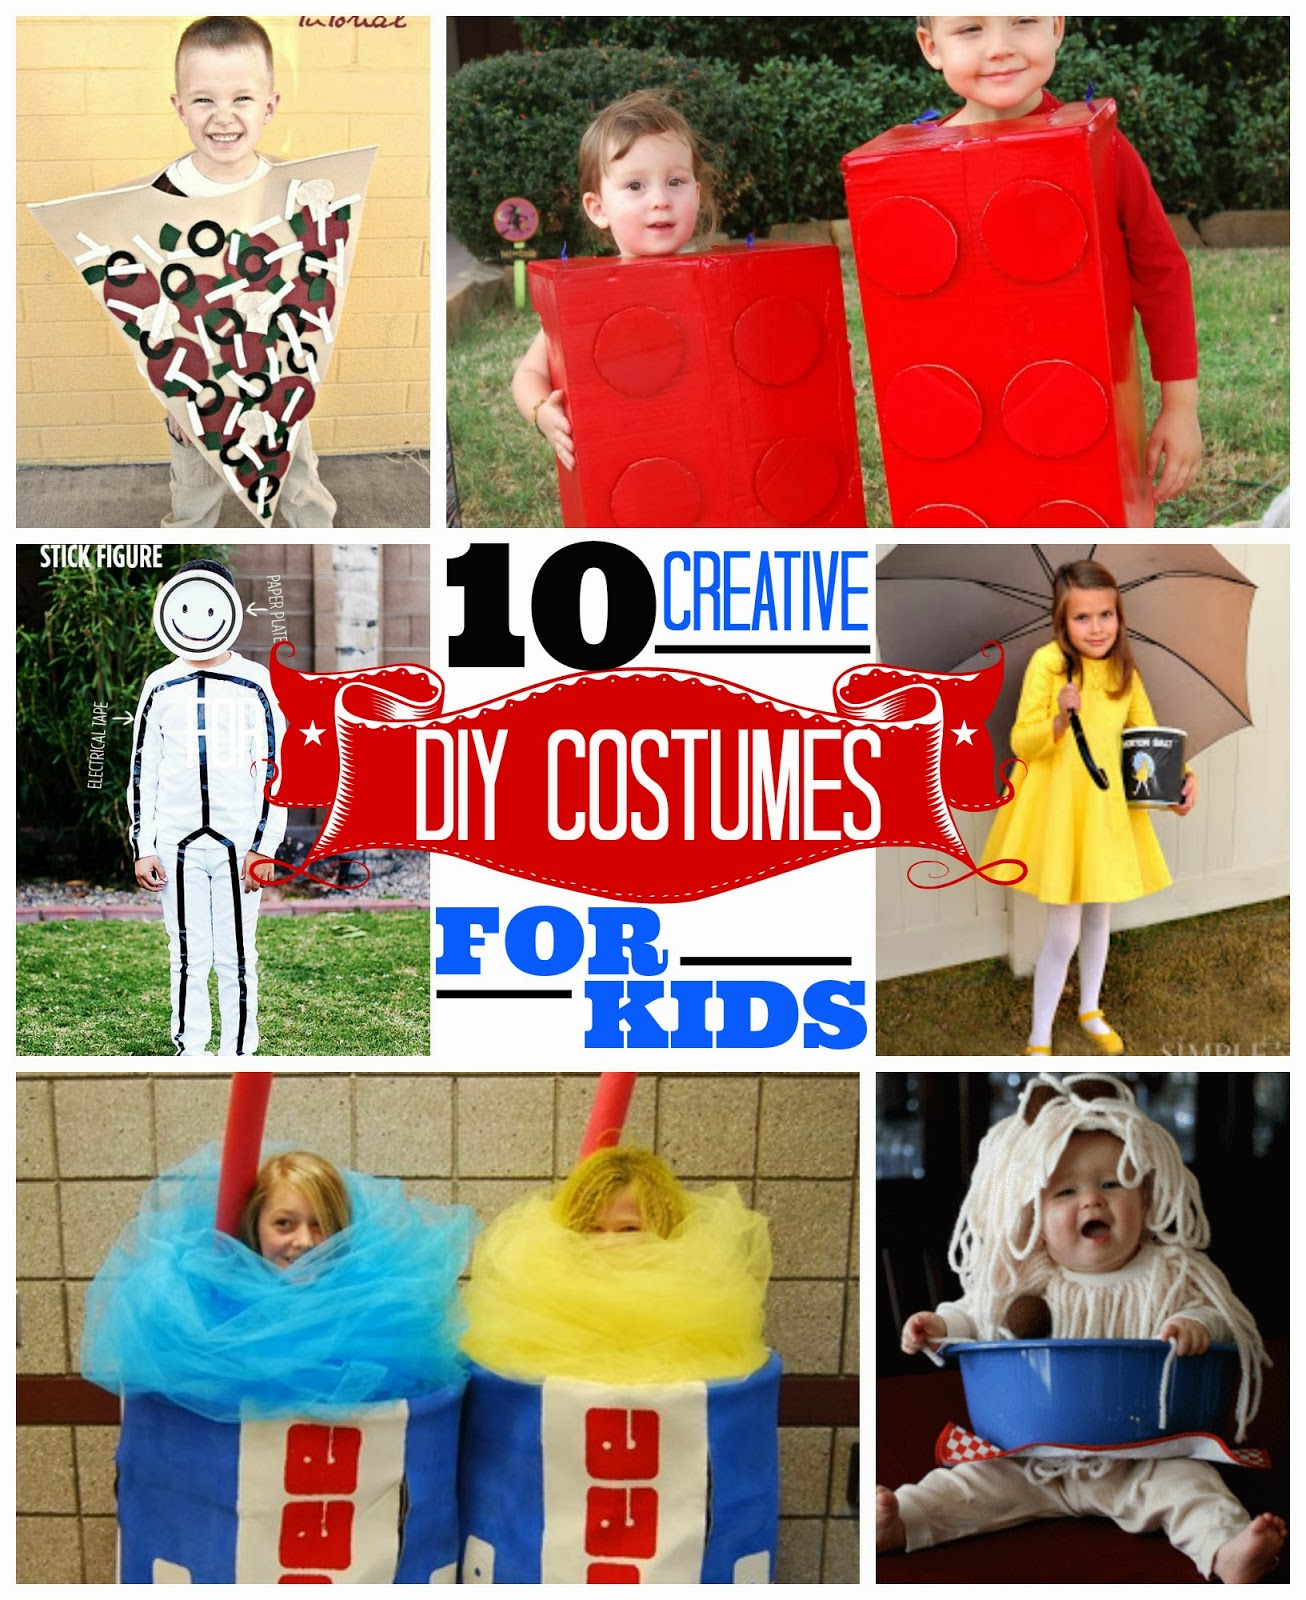 Eat sleep make 10 creative diy costumes for kids for Diy halloween costume ideas for kids